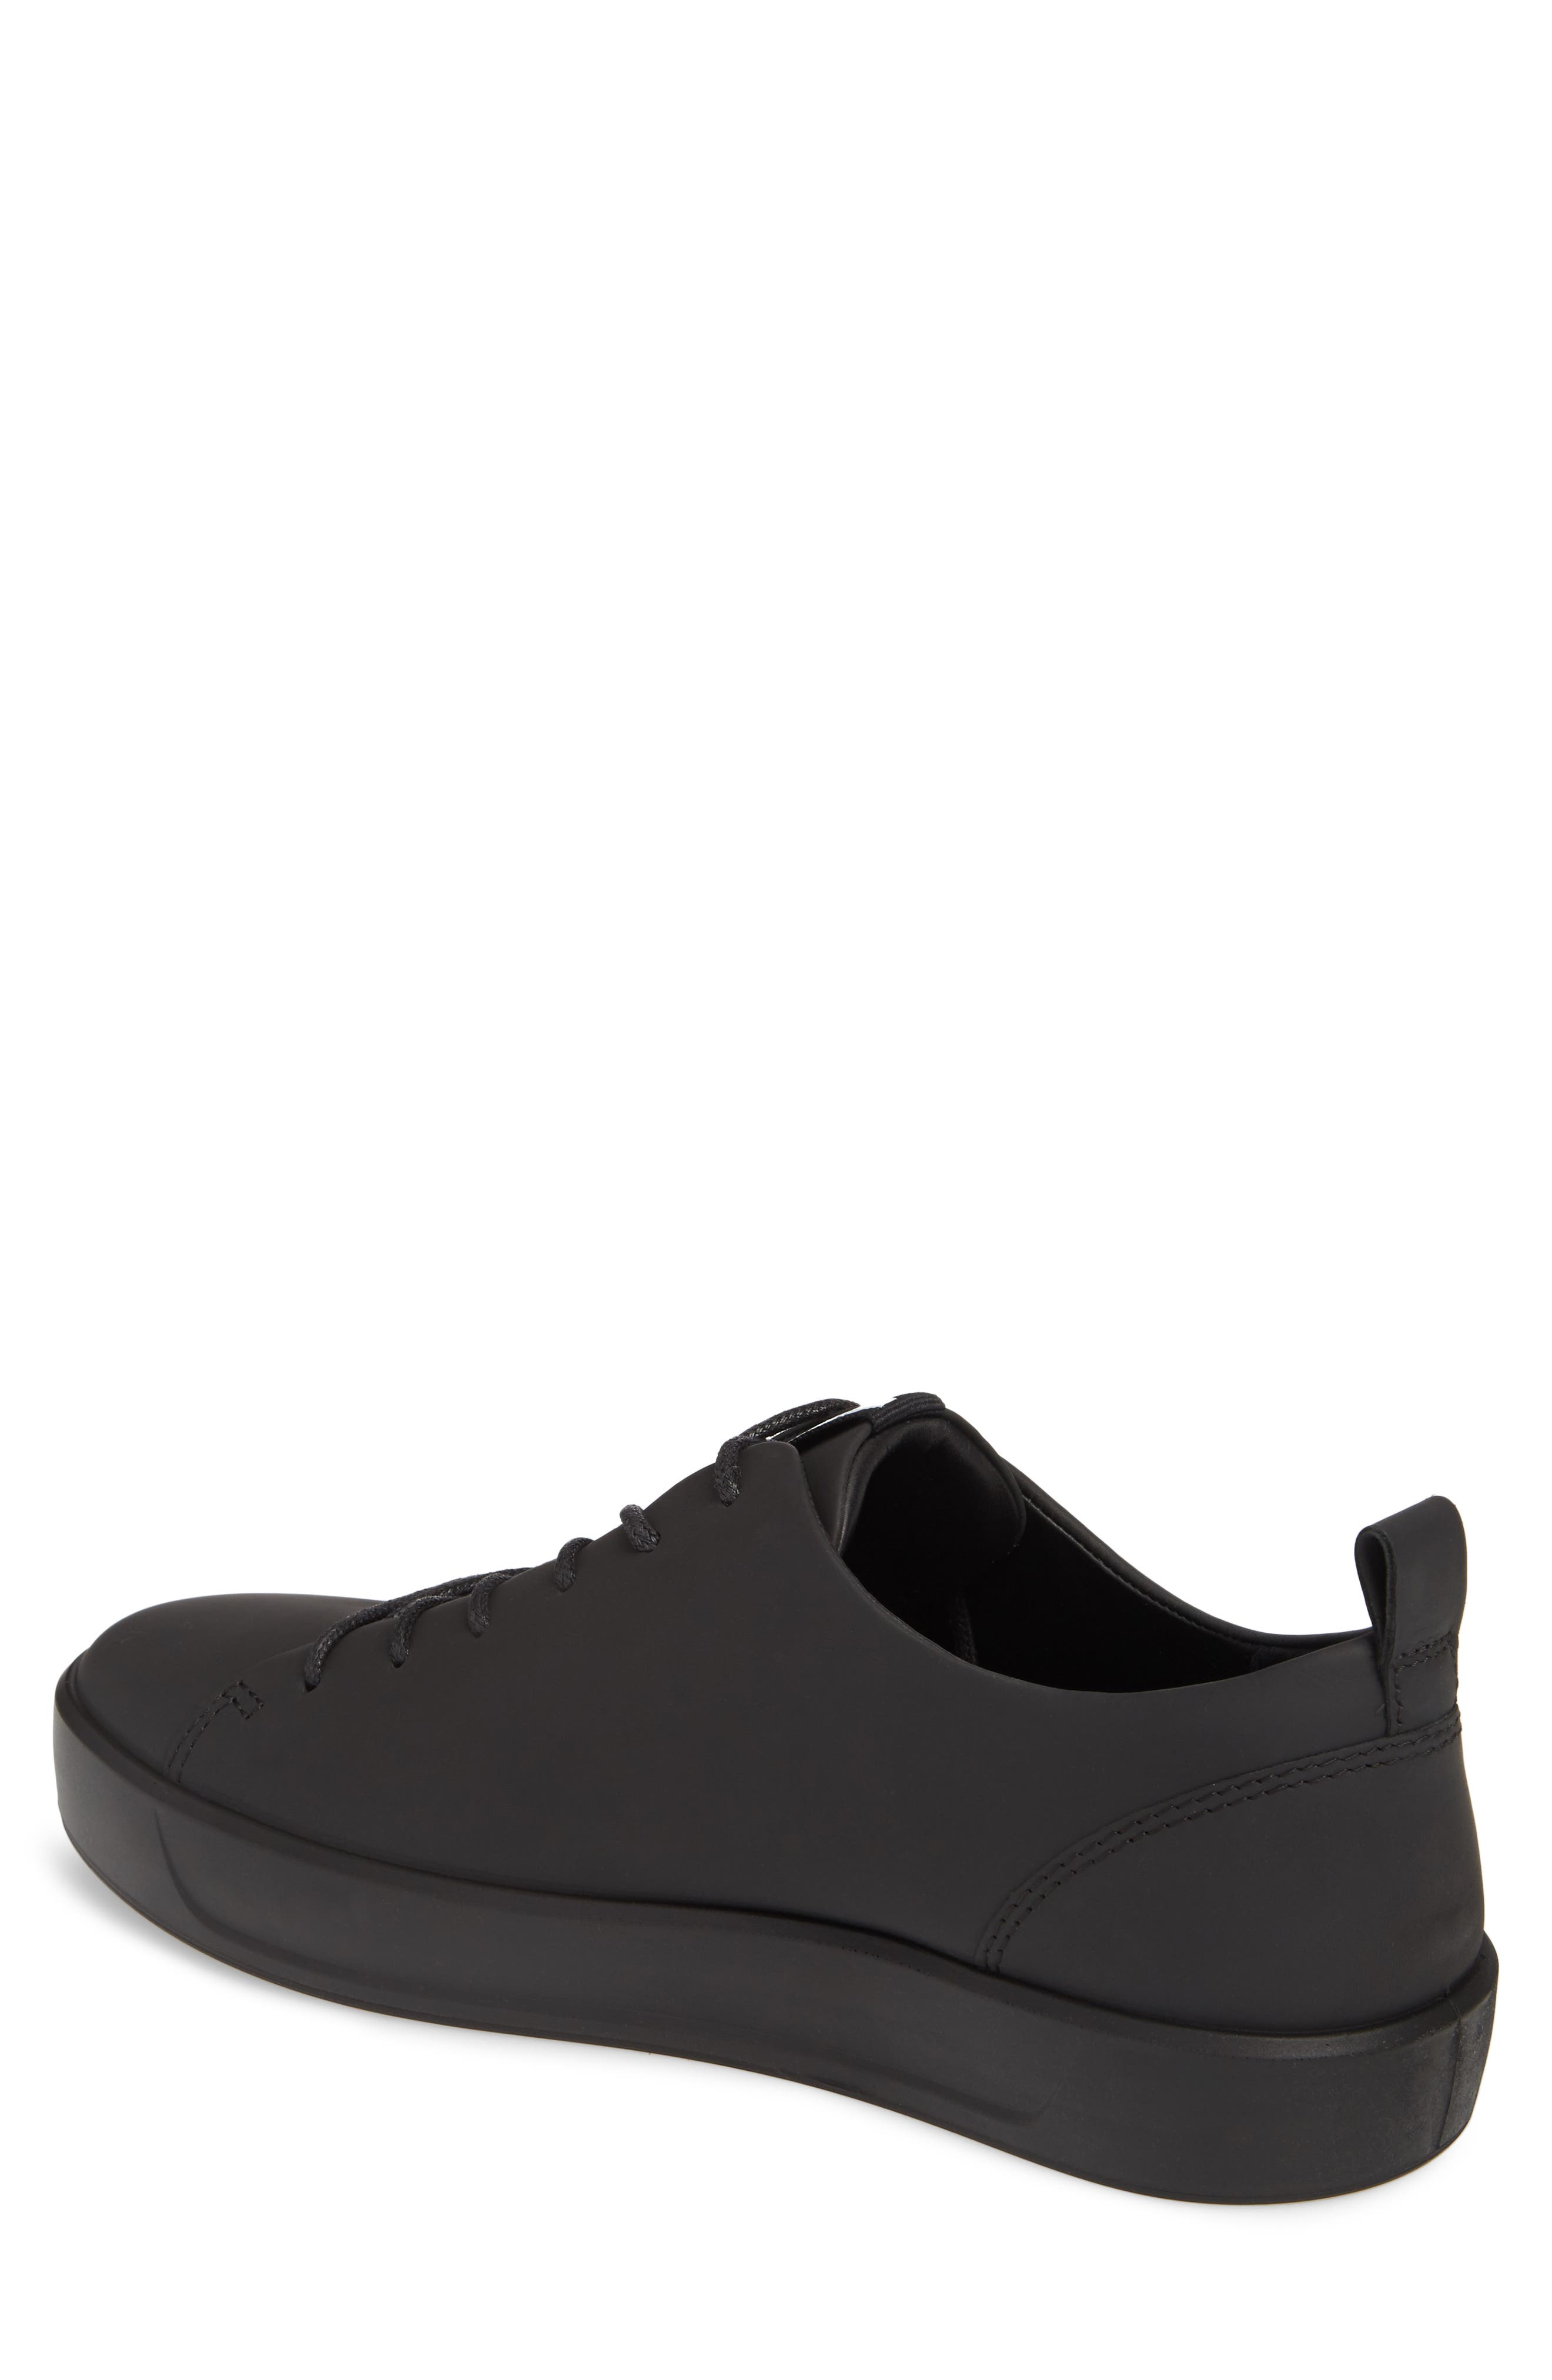 ECCO, Soft 8 Sneaker, Alternate thumbnail 2, color, BLACK LEATHER